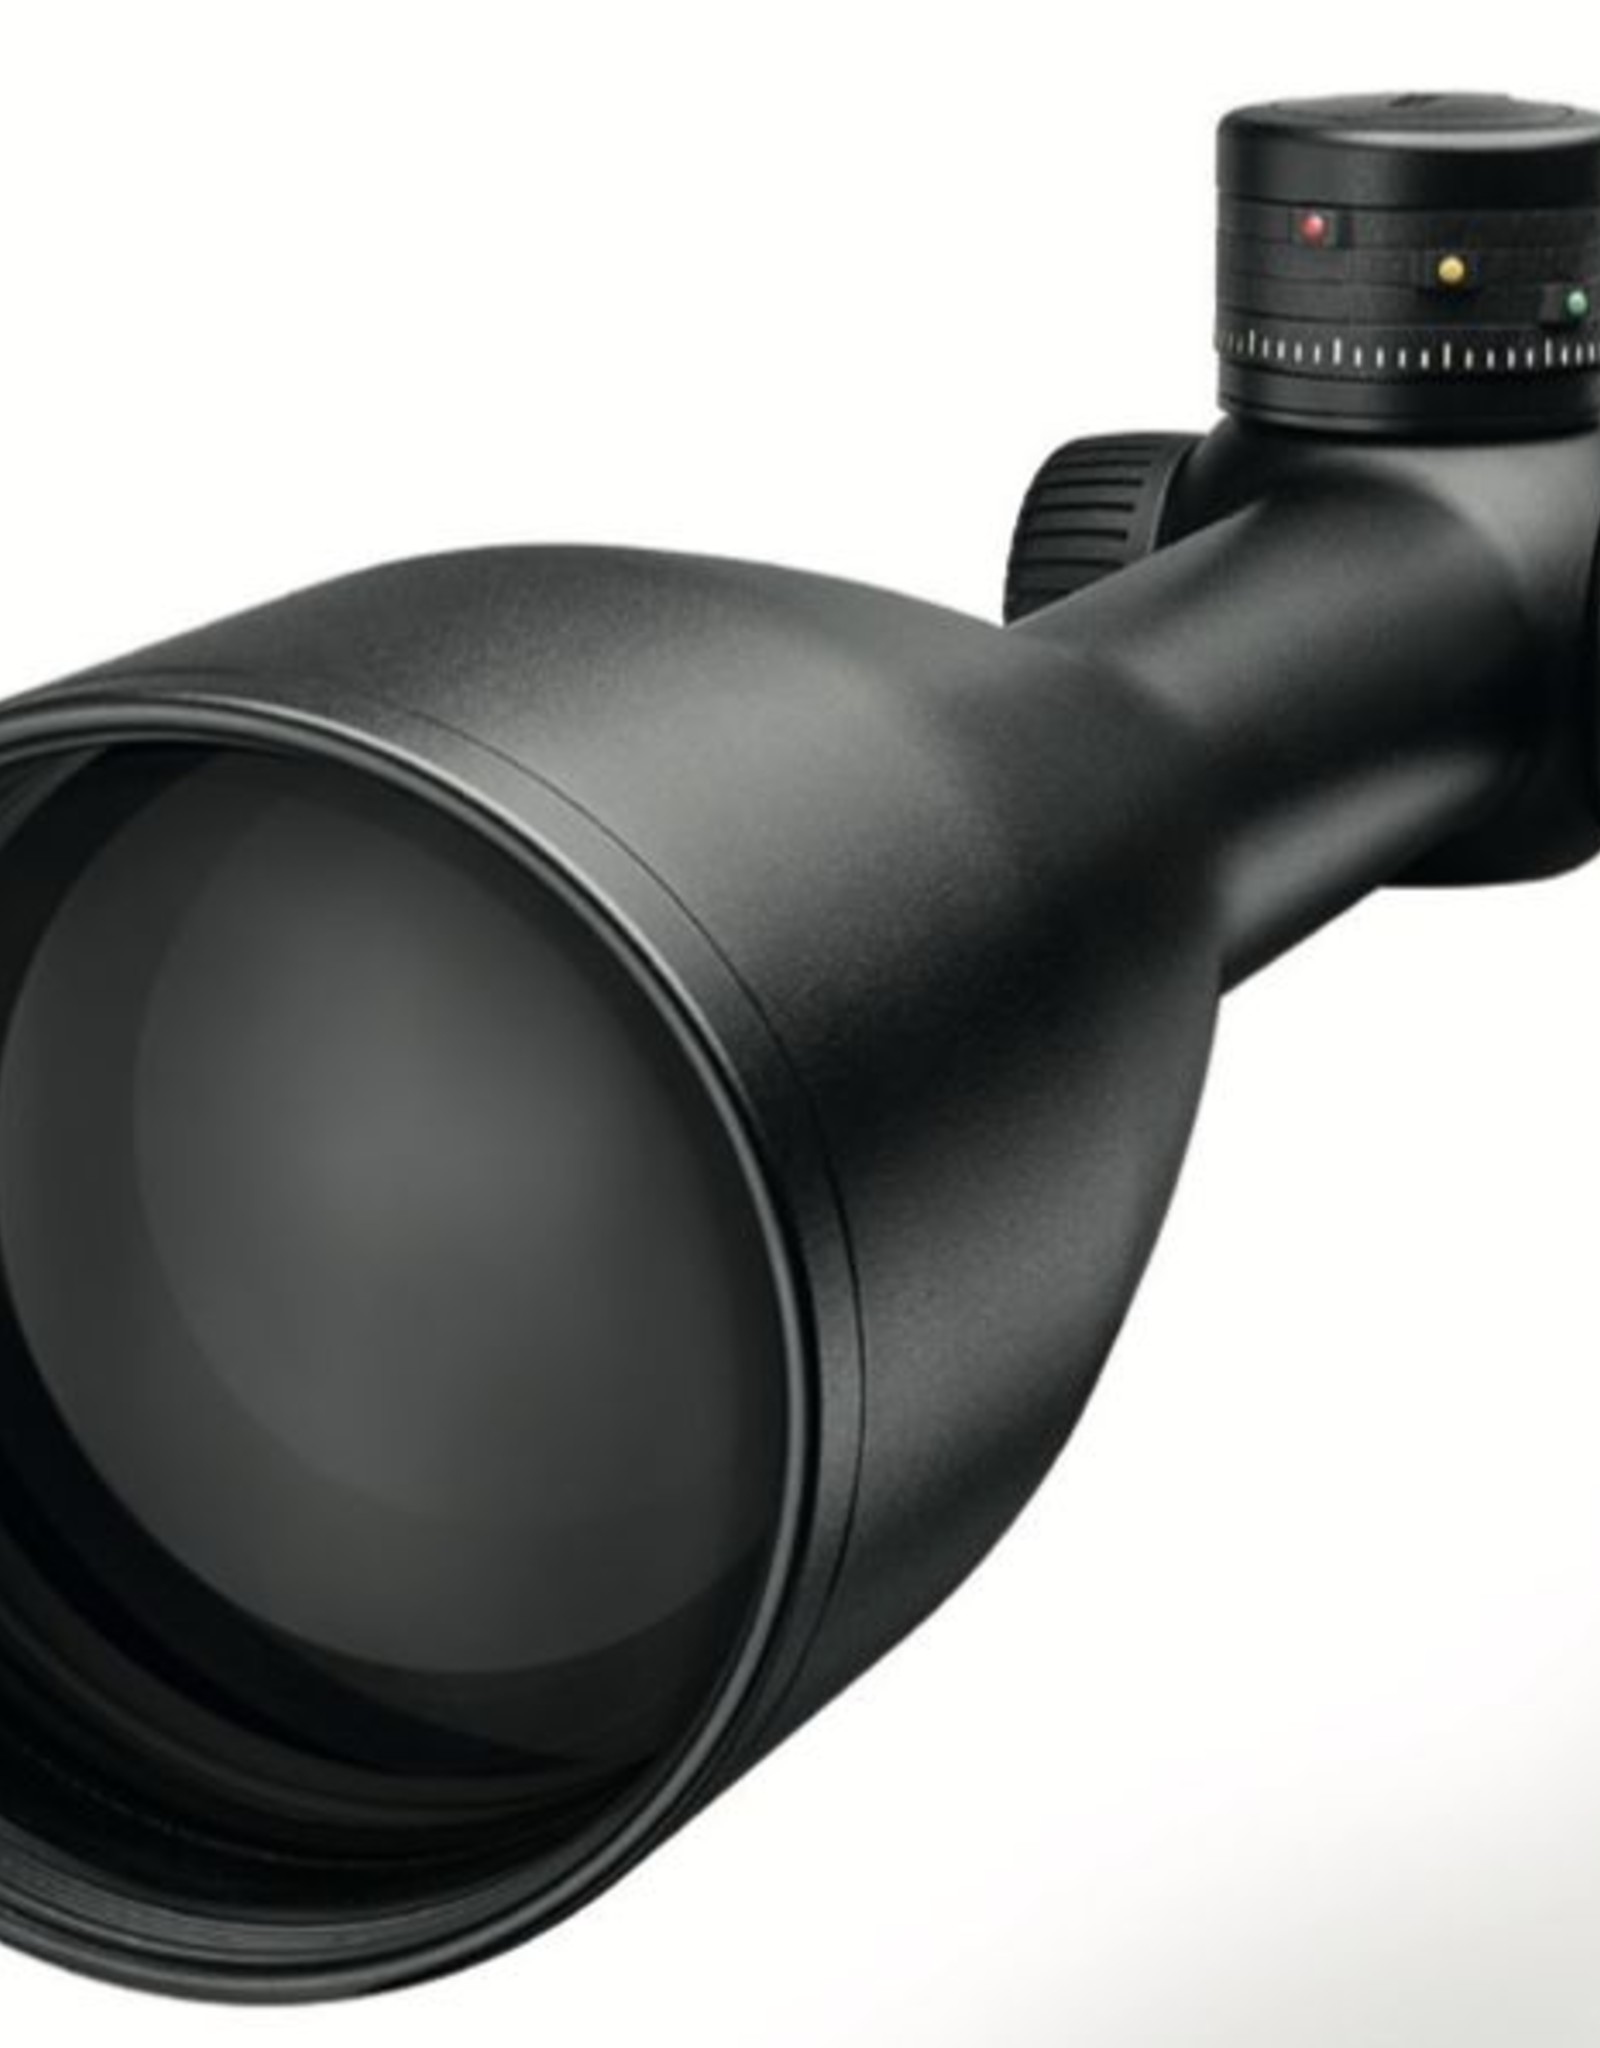 Swarovski Optik Z5 2.4-12x50 - BT-4W